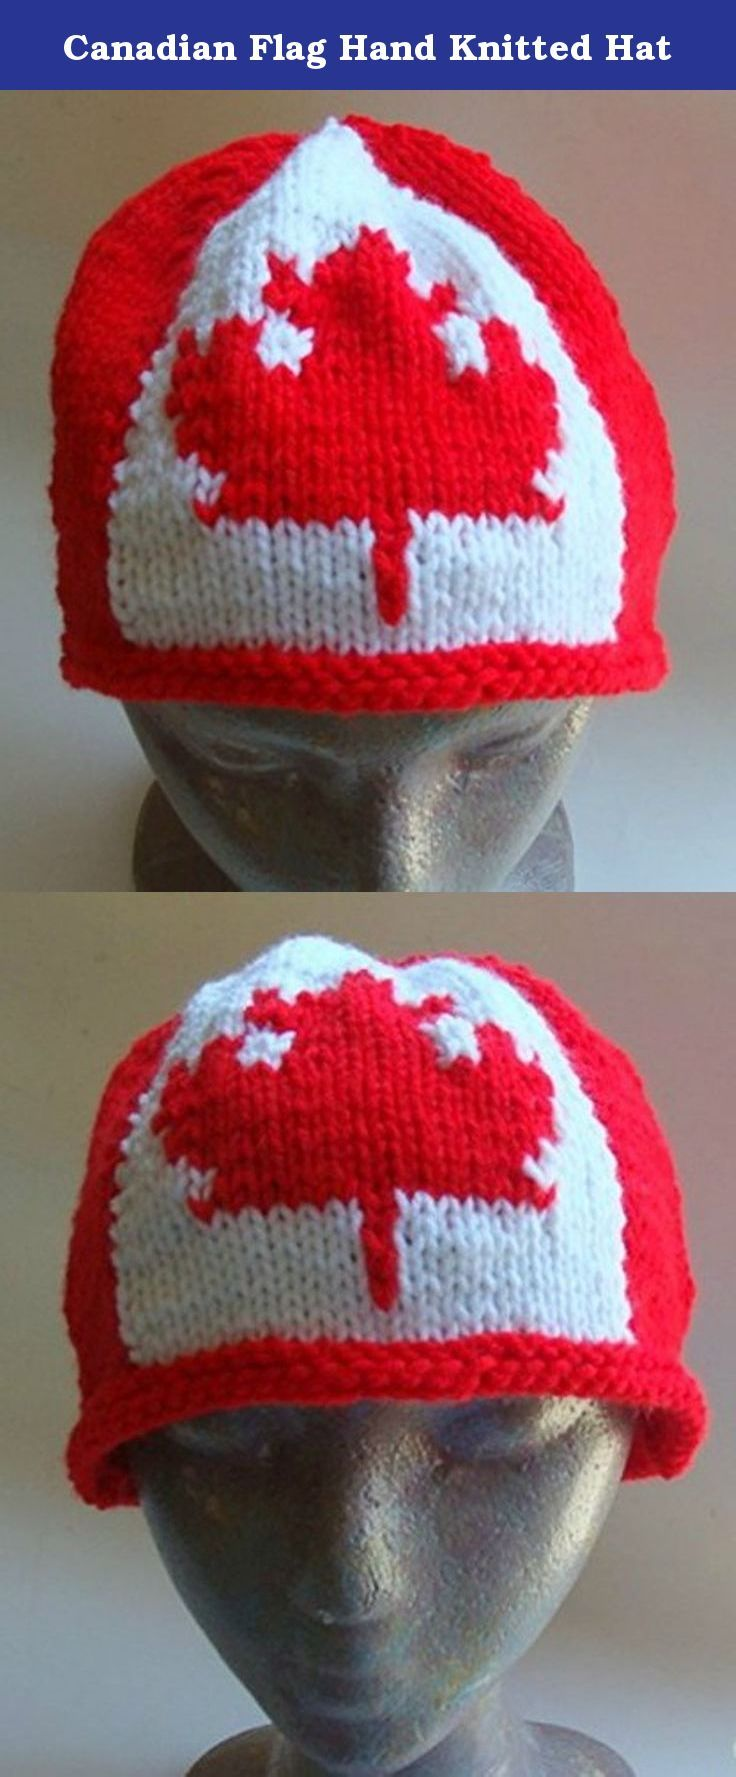 "Canadian Flag Hand Knitted Hat. Canadian flag maple leaf hand knitted hat. This hat is hand knitted in the USA. It is one size fits most. It is hand knitted in a machine washable acrylic yarn, made in the USA. It is made to fit a 22-23"" head, and measures 7"" in length."